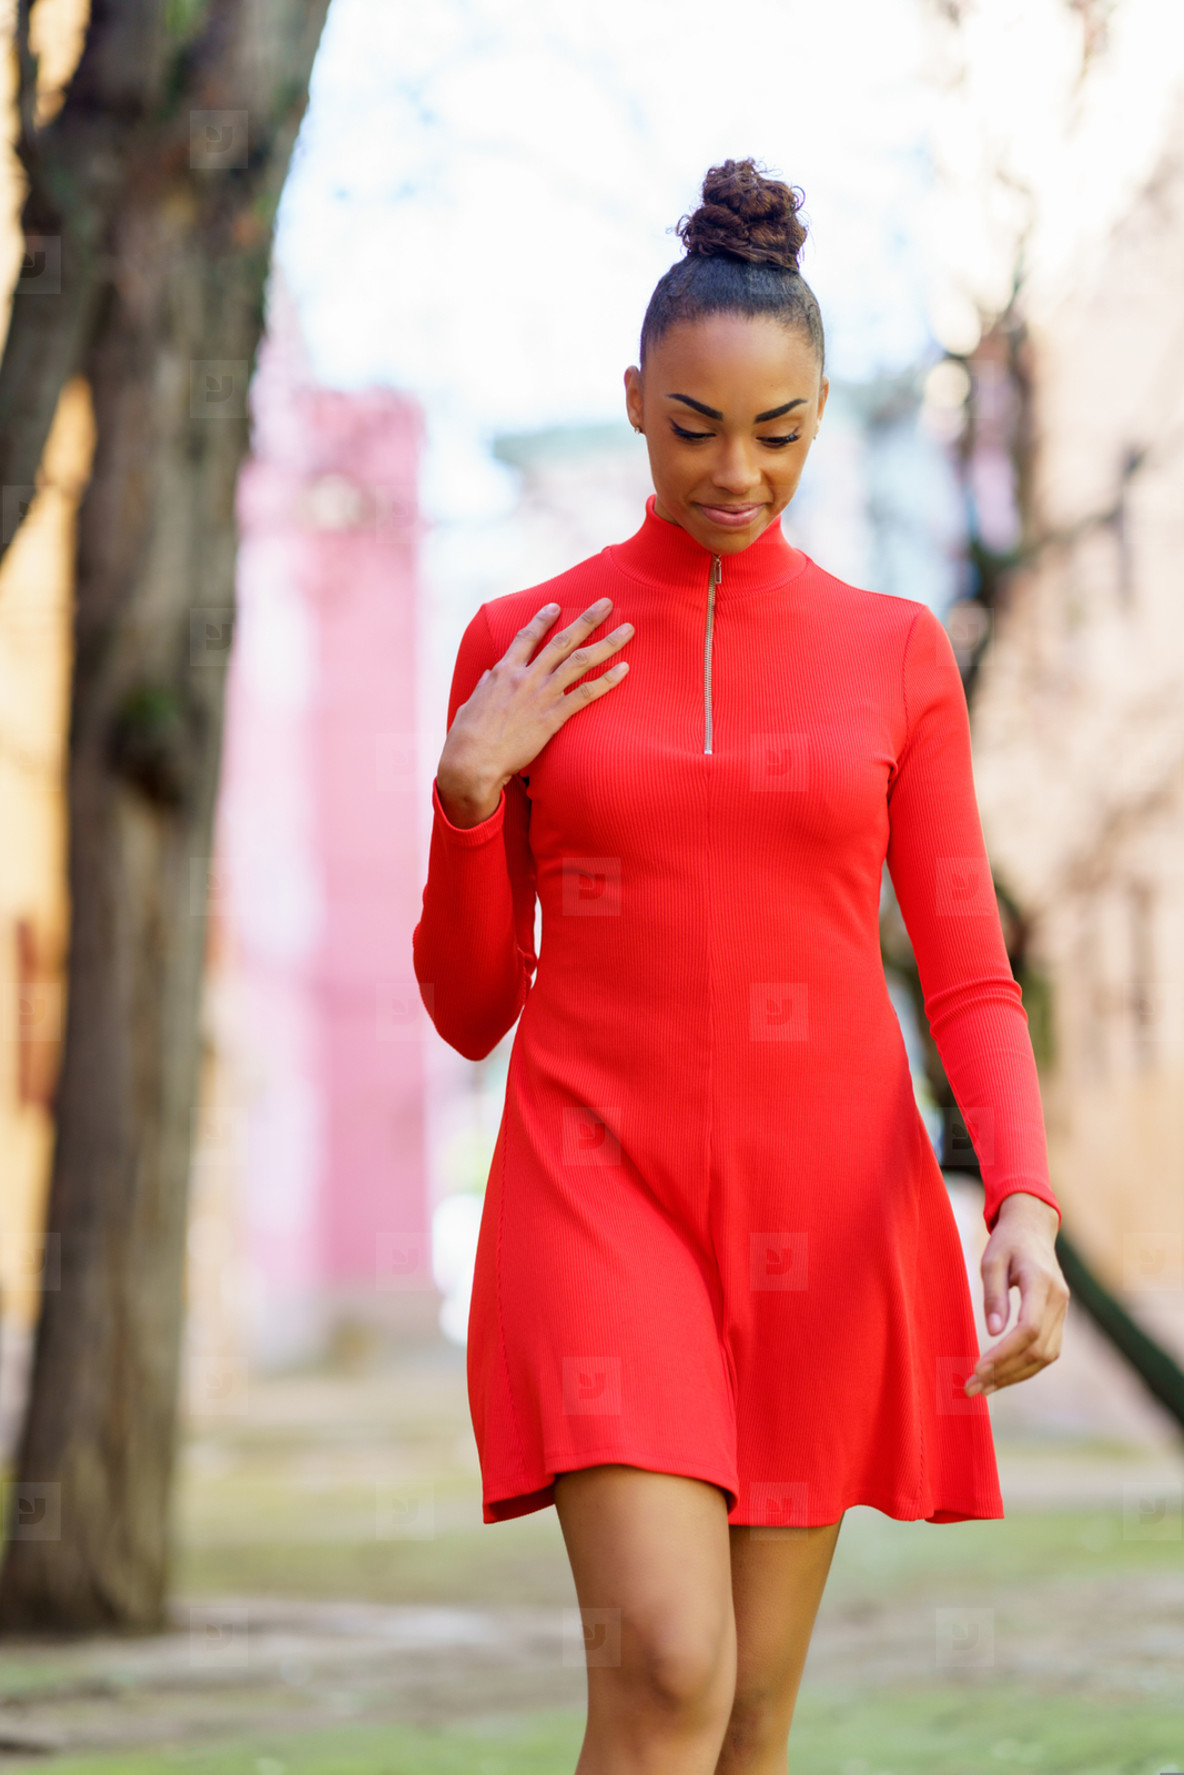 Smiling mixed woman in red dress walking down the street